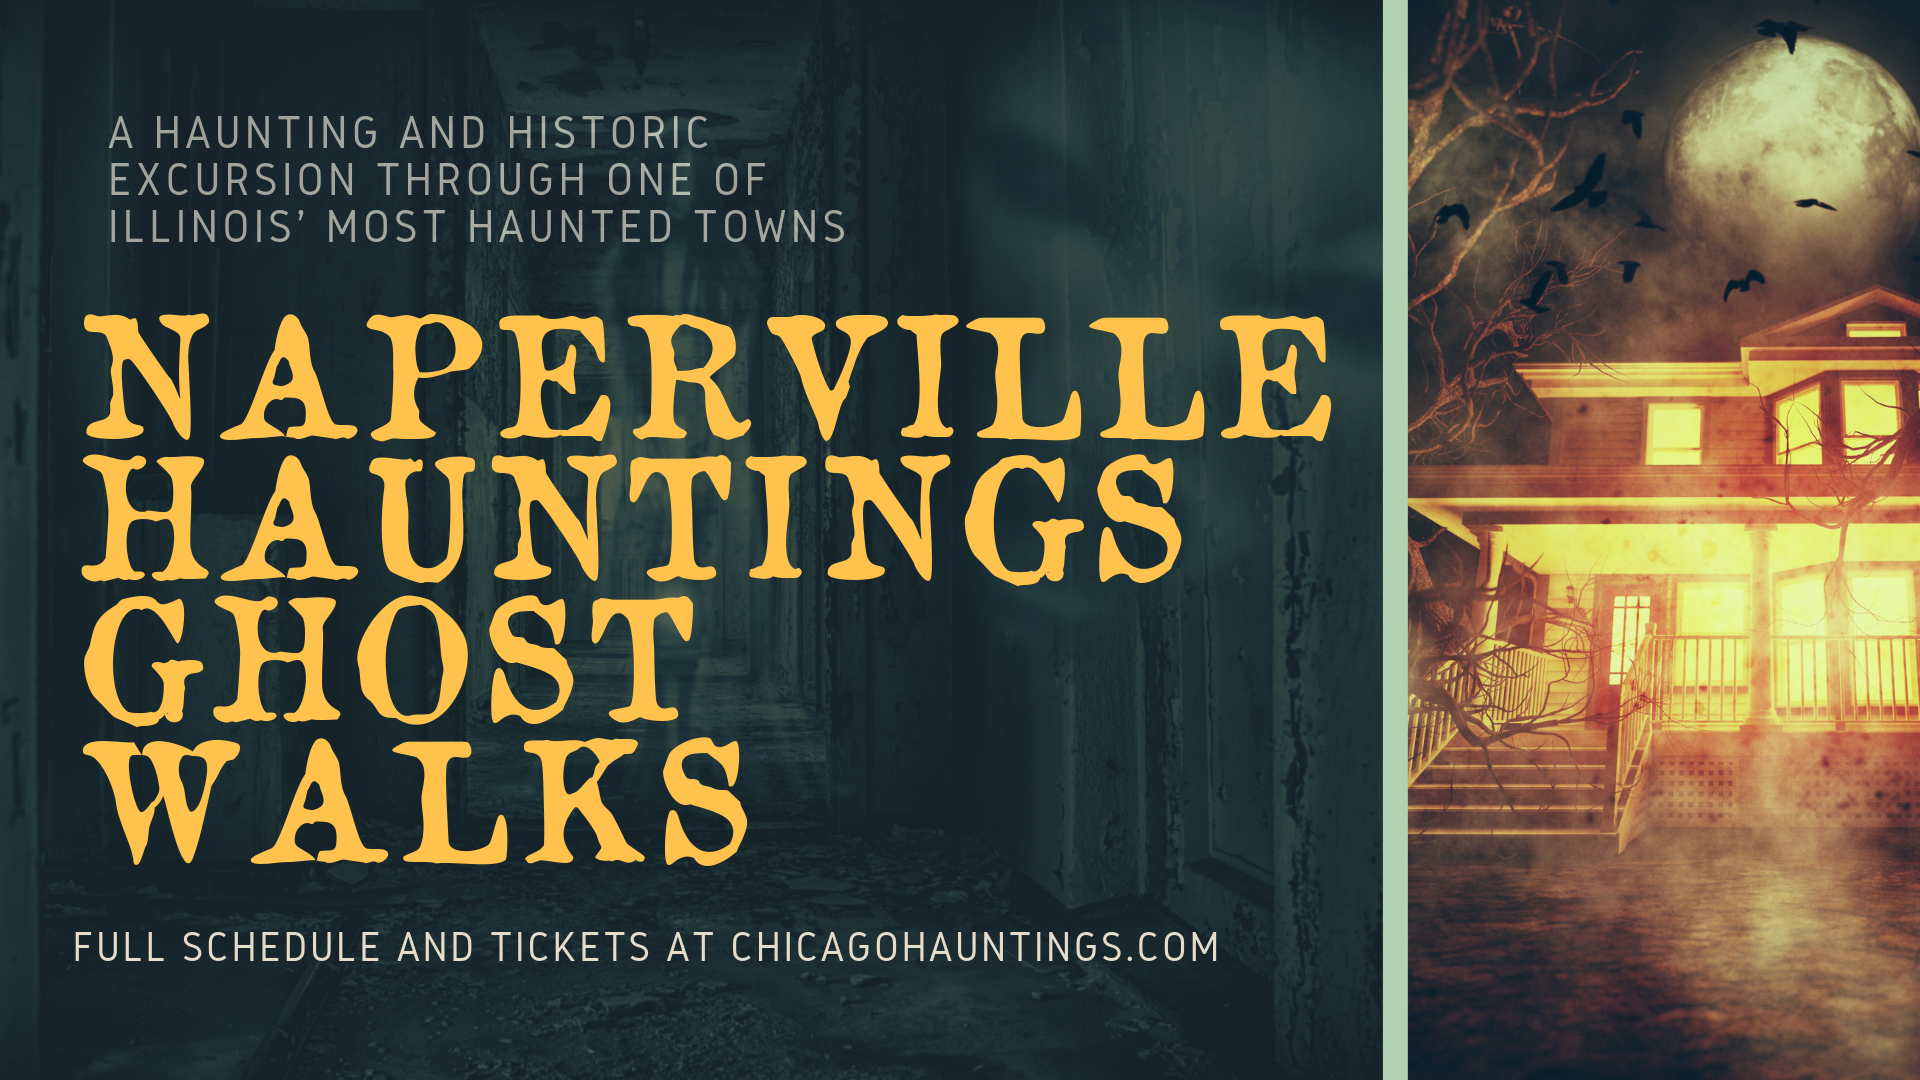 Naperville Hauntings Ghost Tours